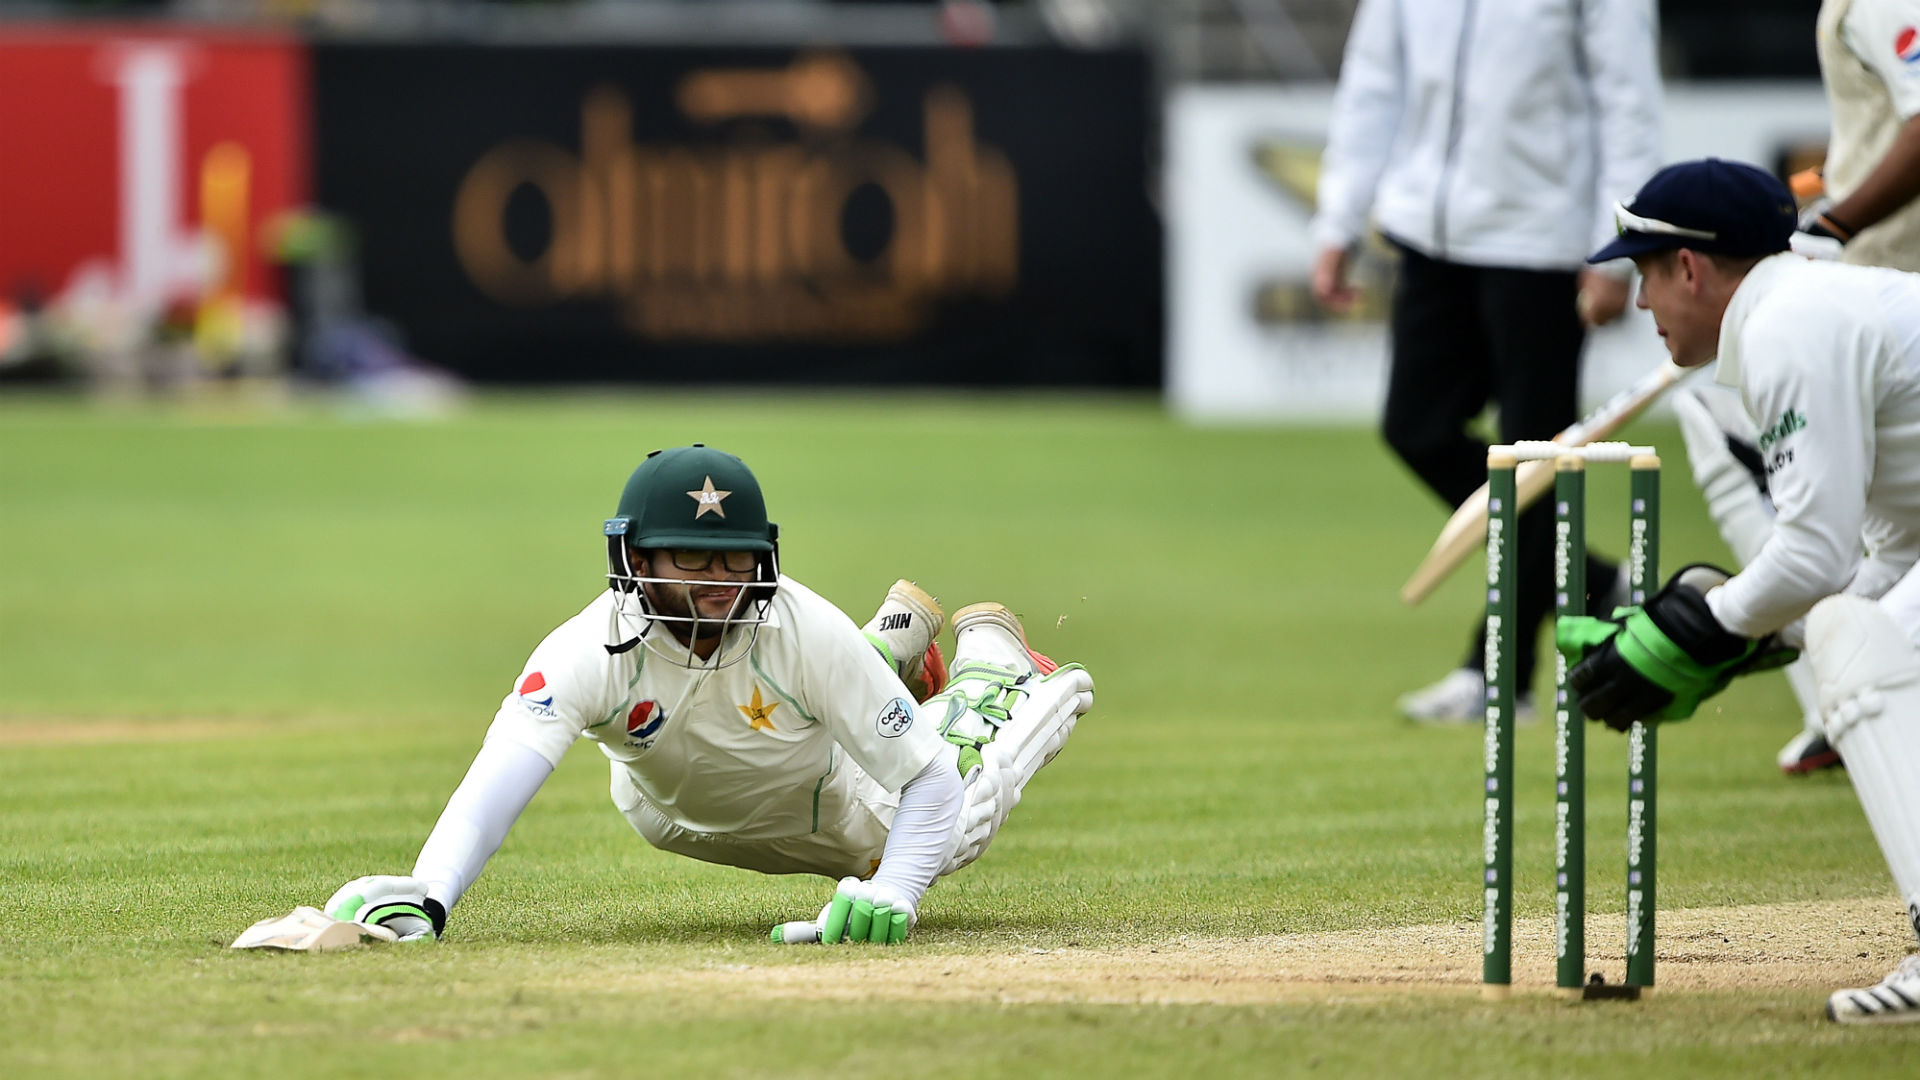 Pakistan collapse gives Ireland hope of remarkable Test victory class=